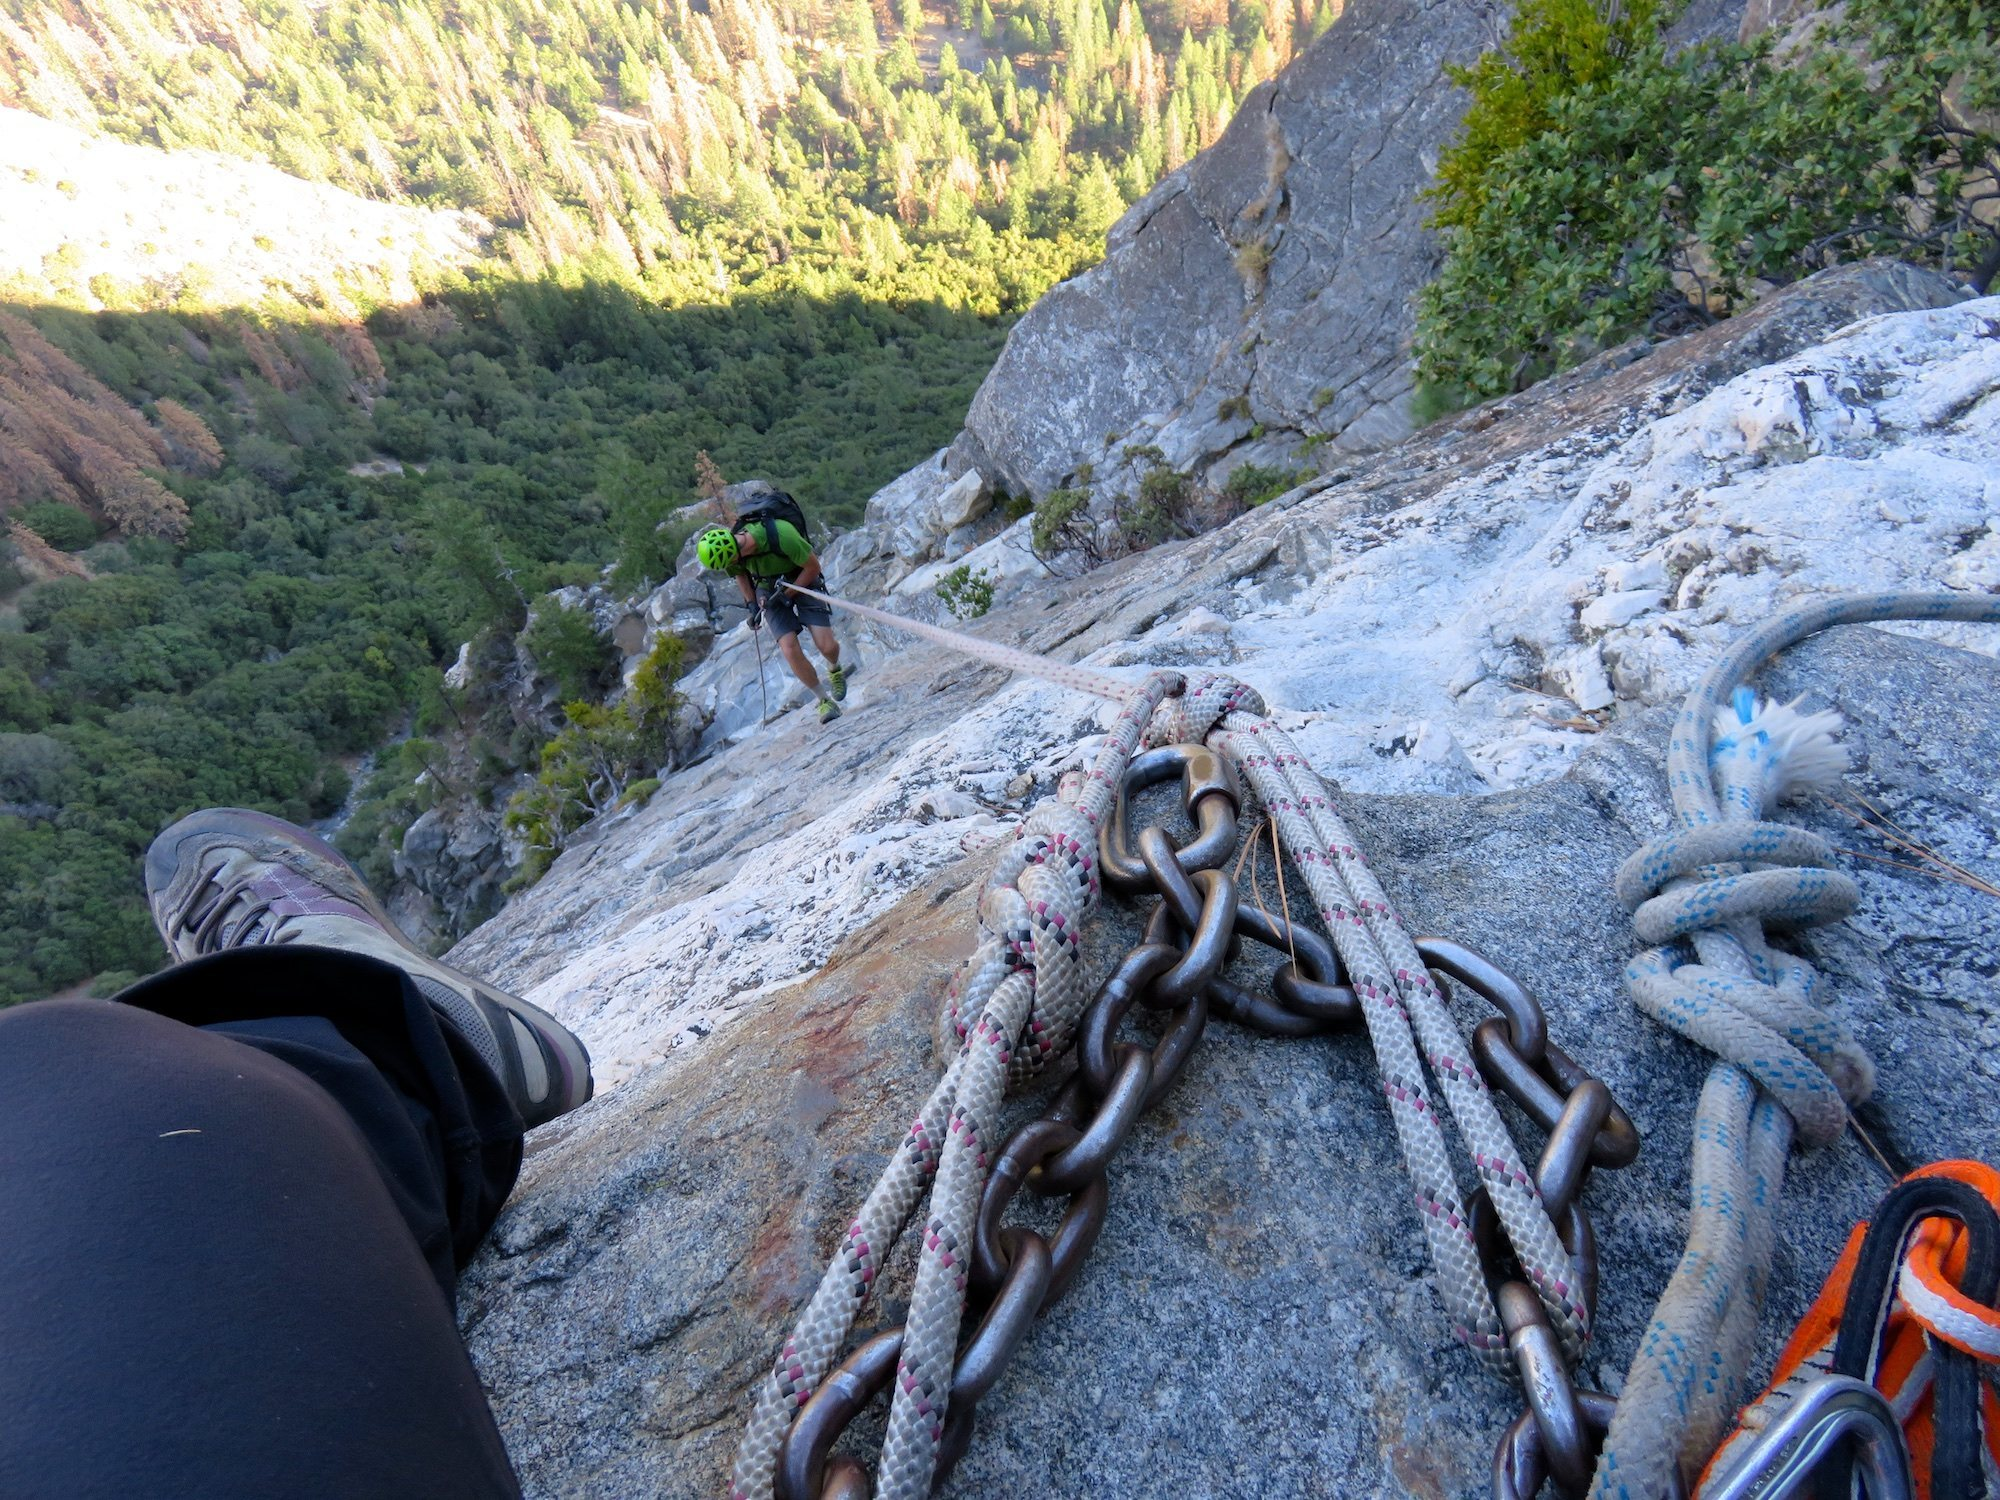 East Ledges Descent  Rappel 1 of 4. There were fixed ropes in decent shape 7266ed6f8390